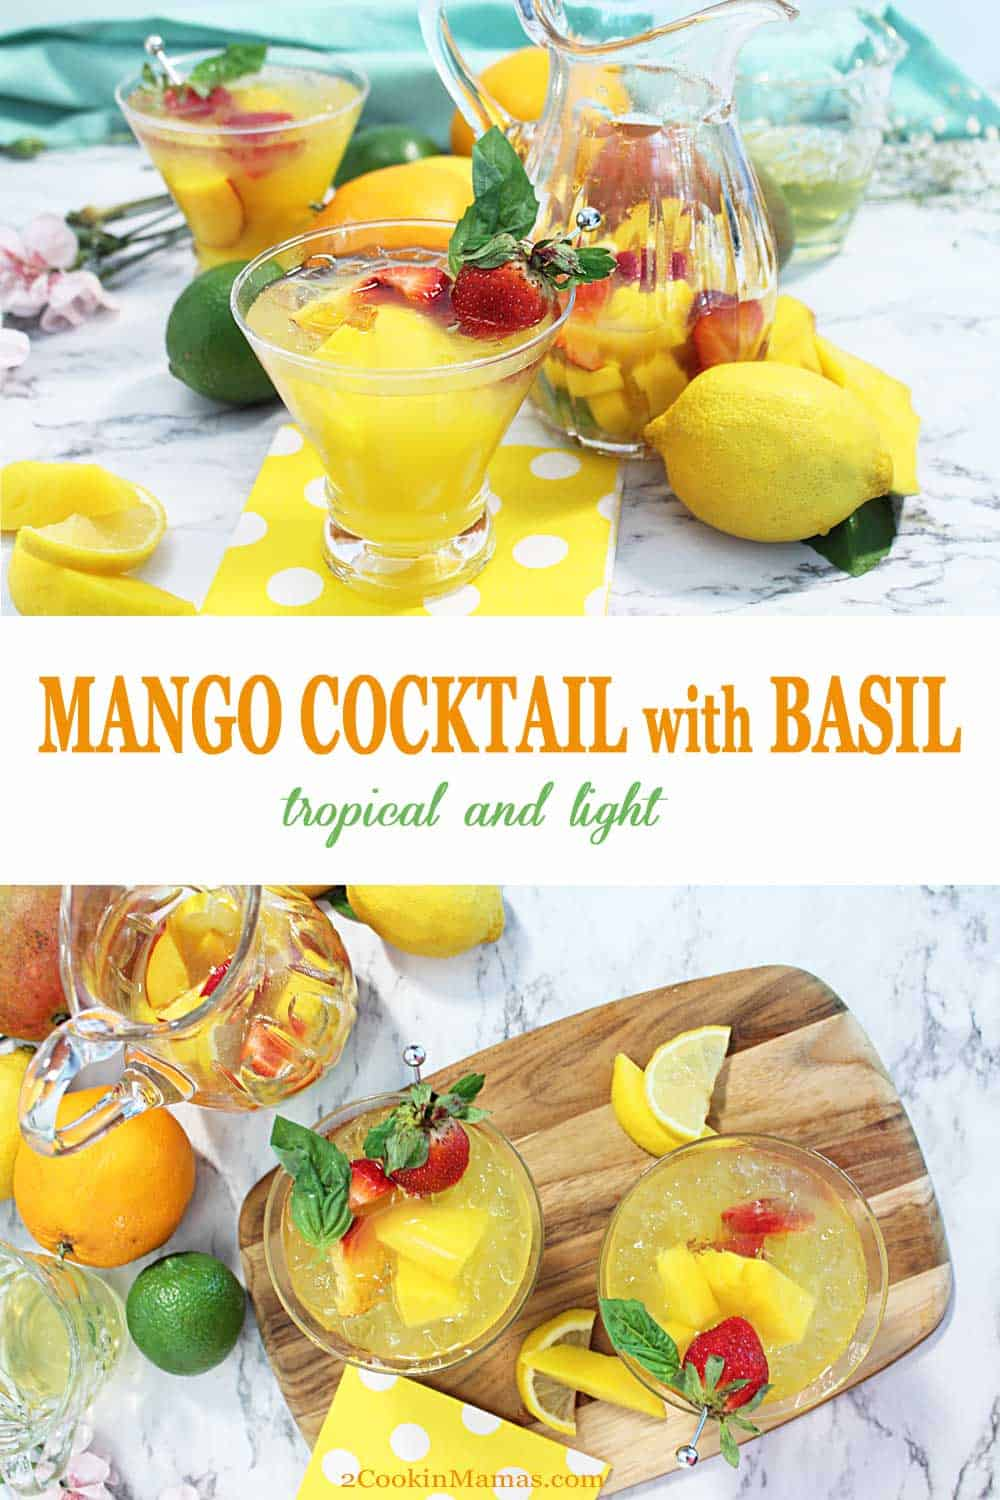 Mango cocktail with Basil | 2 Cookin Mamas This Mango Cocktail with Basil is a tropically inspired drink with an herbal edge. A light pinot grigio is mixed with mango nectar and lemon juice then punched up with a bit of basil simple syrup. A totally refreshing drink for the warm spring and summer days ahead. #cocktail #drink #summer #wine #mango #basil #lemon #recipe #simplesyrup #basil